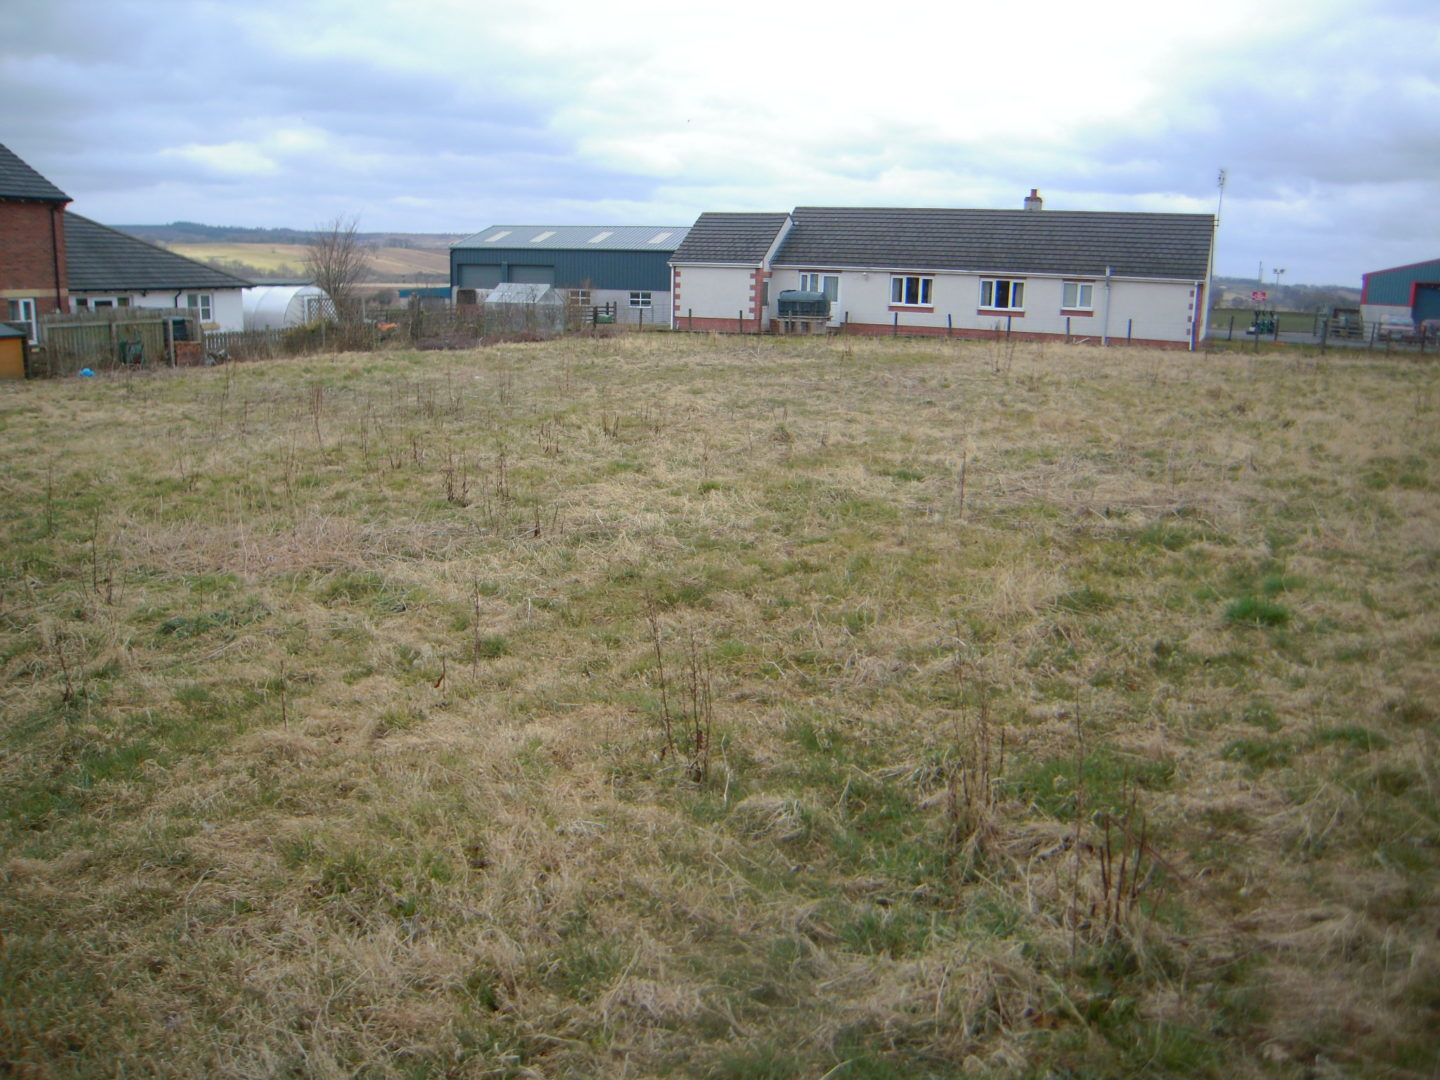 Development Land, Meadowside, Langwathby – UNDER OFFER